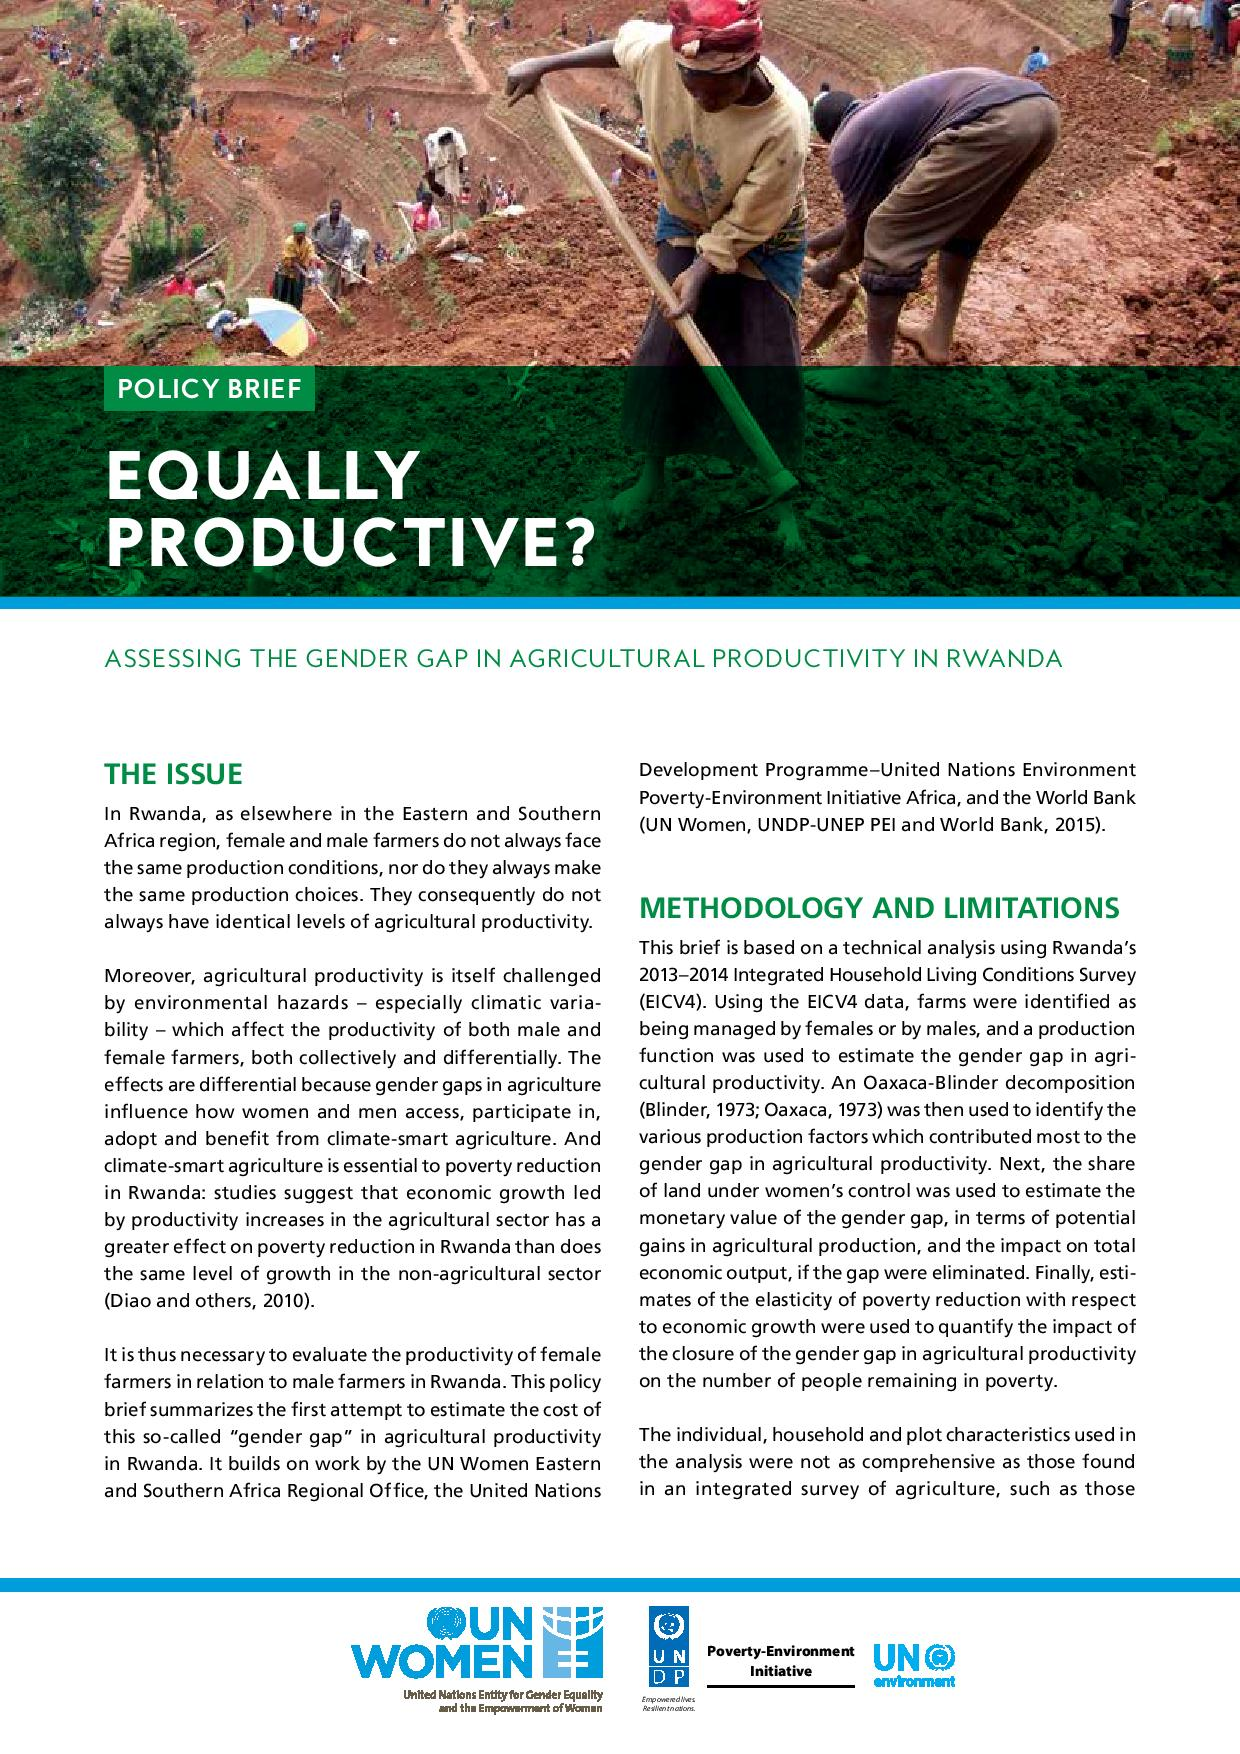 Policy Brief: Assessing the Gender Gap in Agricultural Productivity in Rwanda